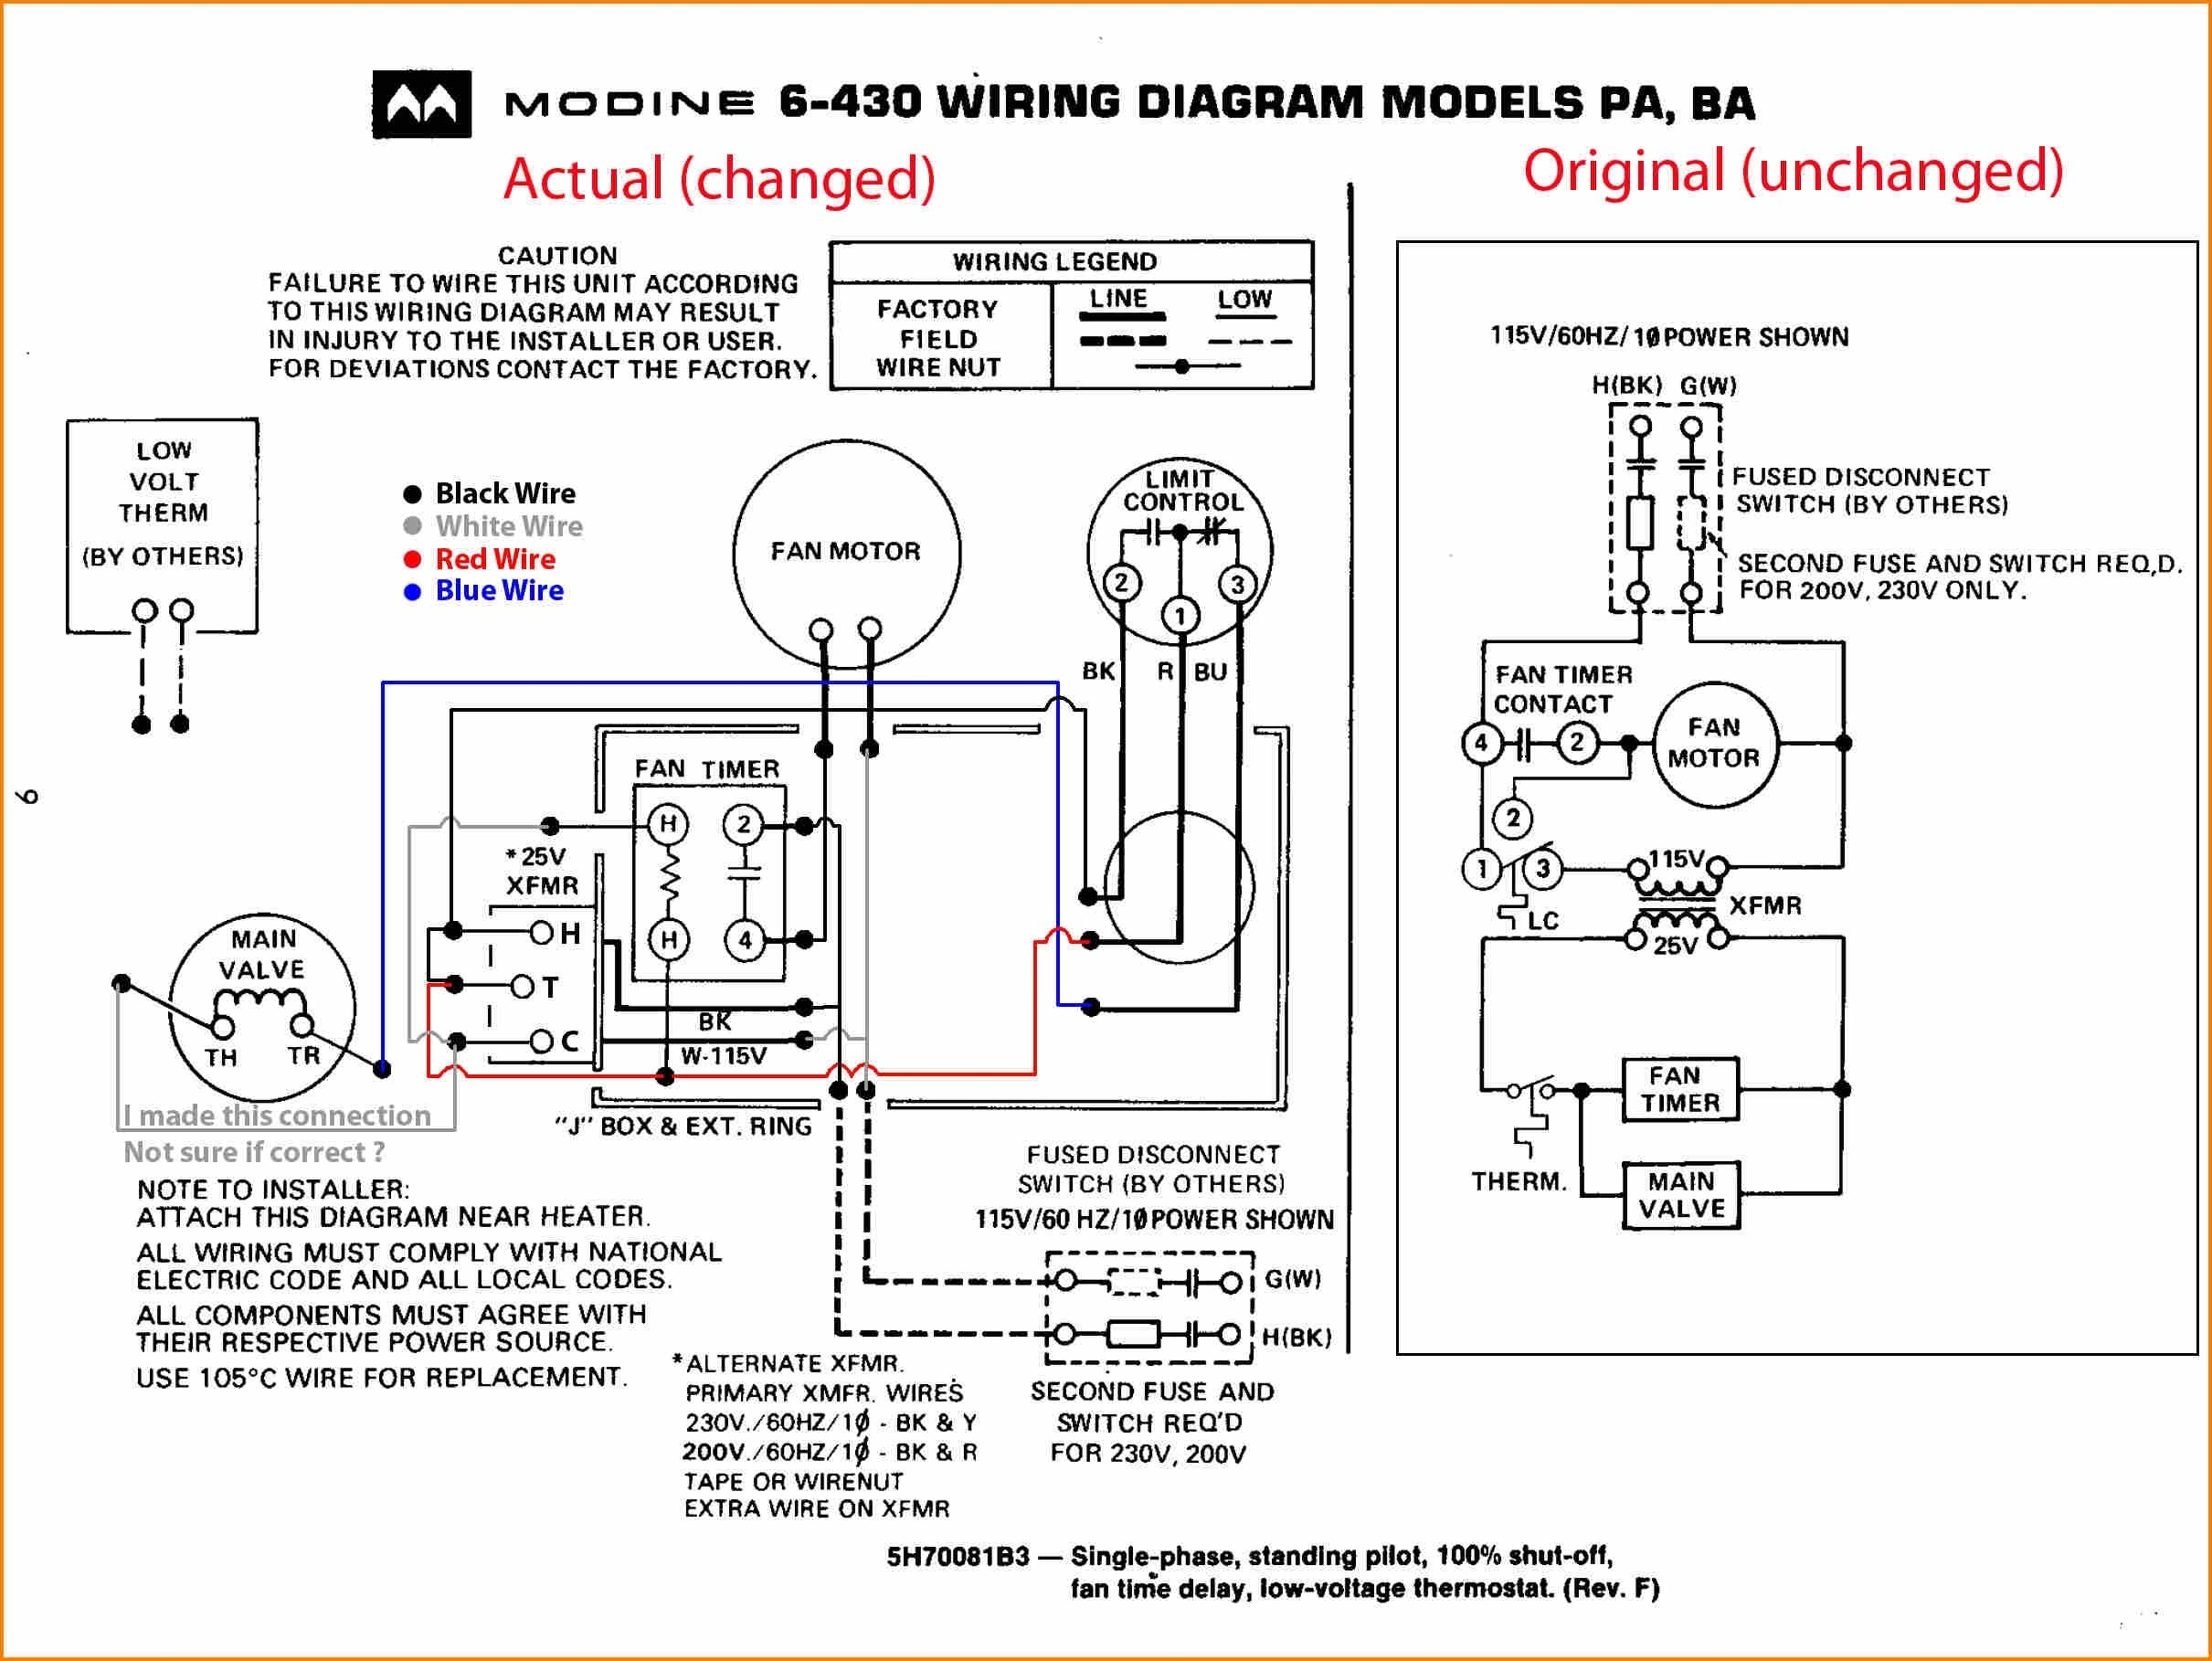 ge blower wiring diagram free picture schematic ge thermostat wiring diagram free picture schematic